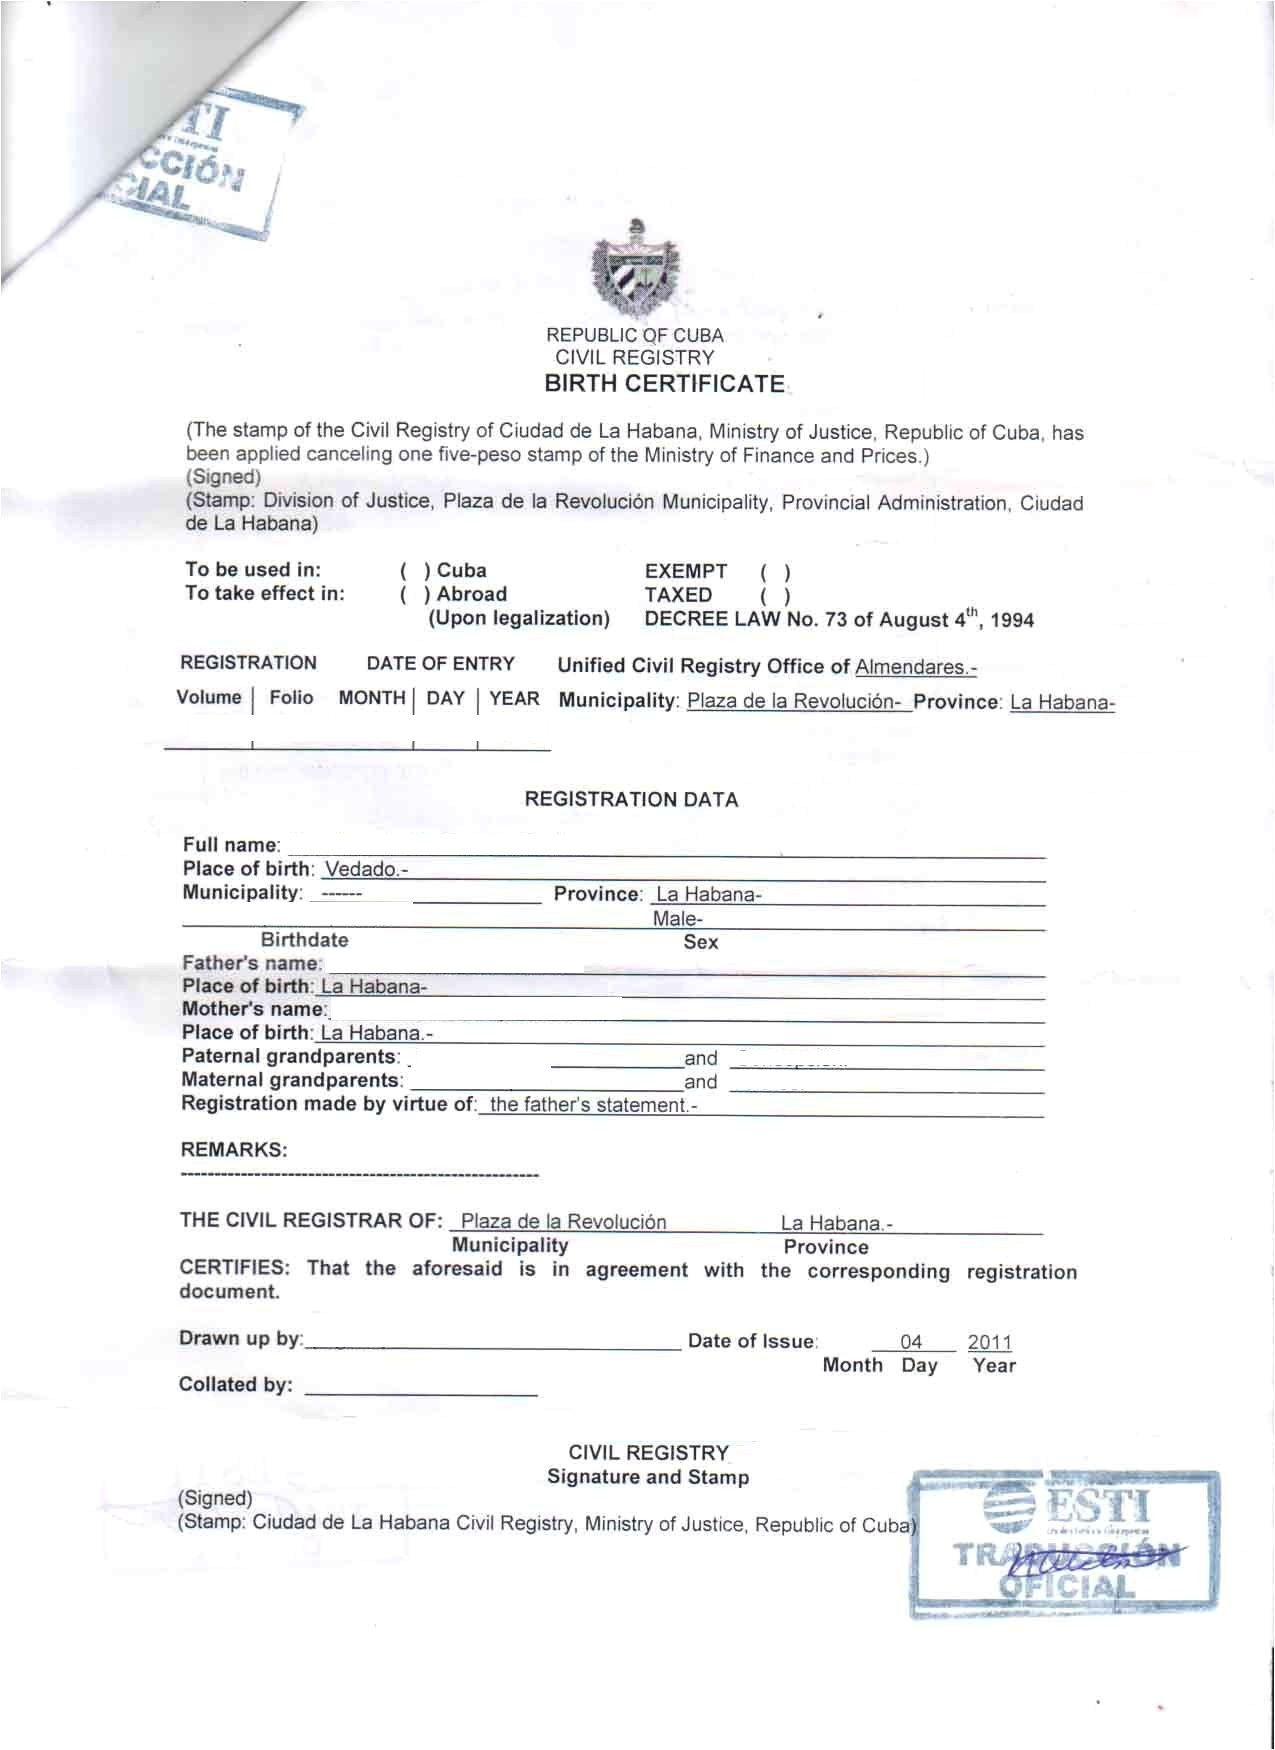 Free Birth Certificate Translation Template From English